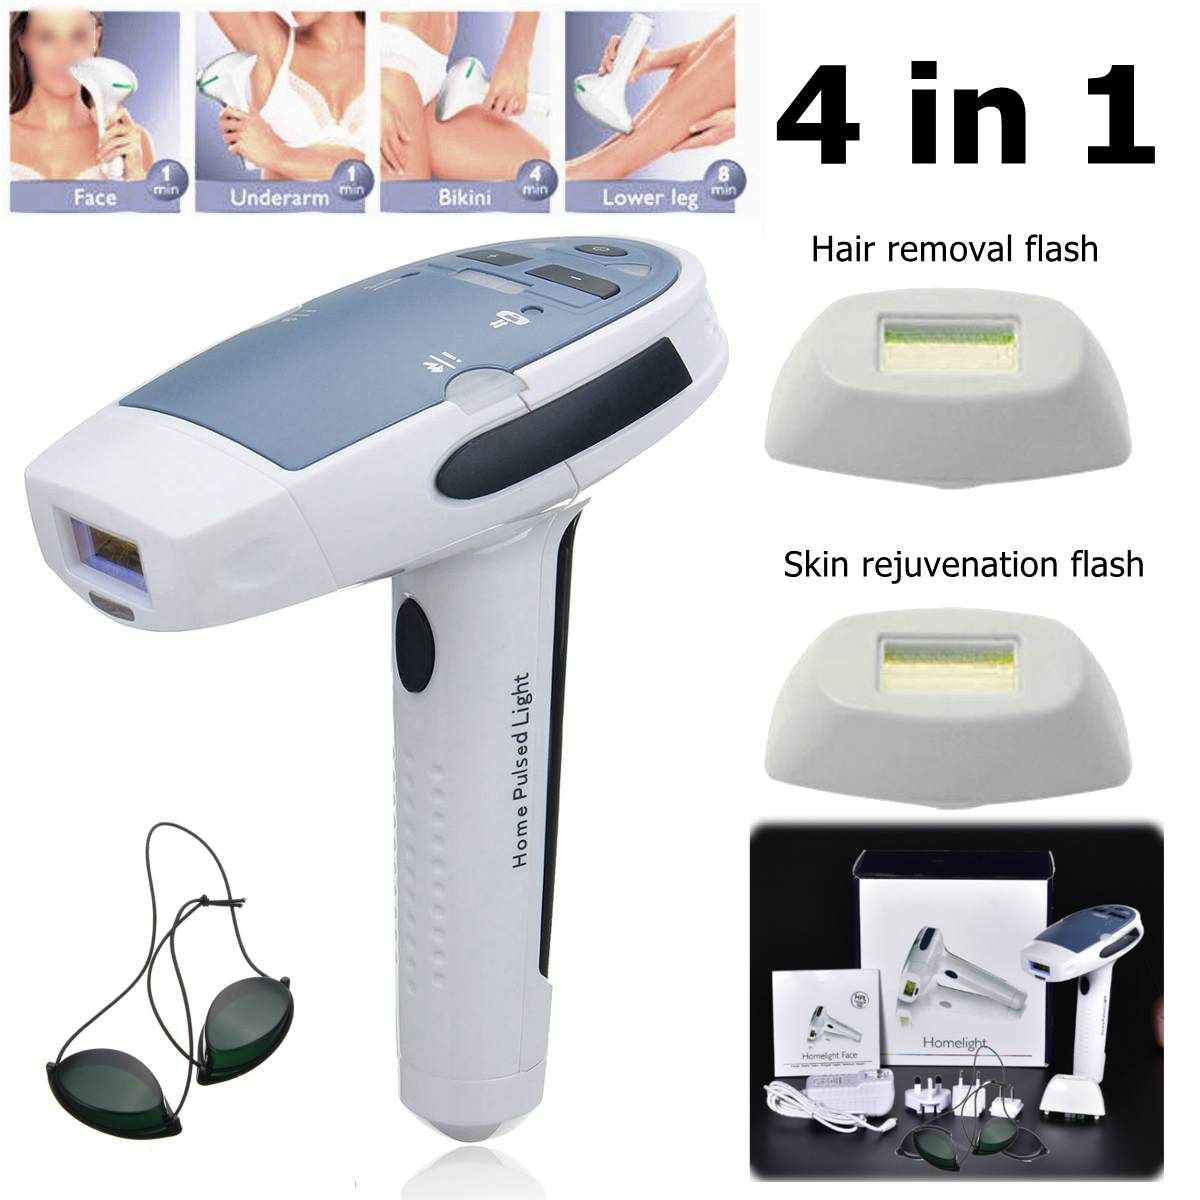 4 In1 Lobemoky 400000 Laser Permanent Hair Removal Machine Body Painless Epilator In 2020 Hair Removal Permanent Hair Removal Hair Removal Machine